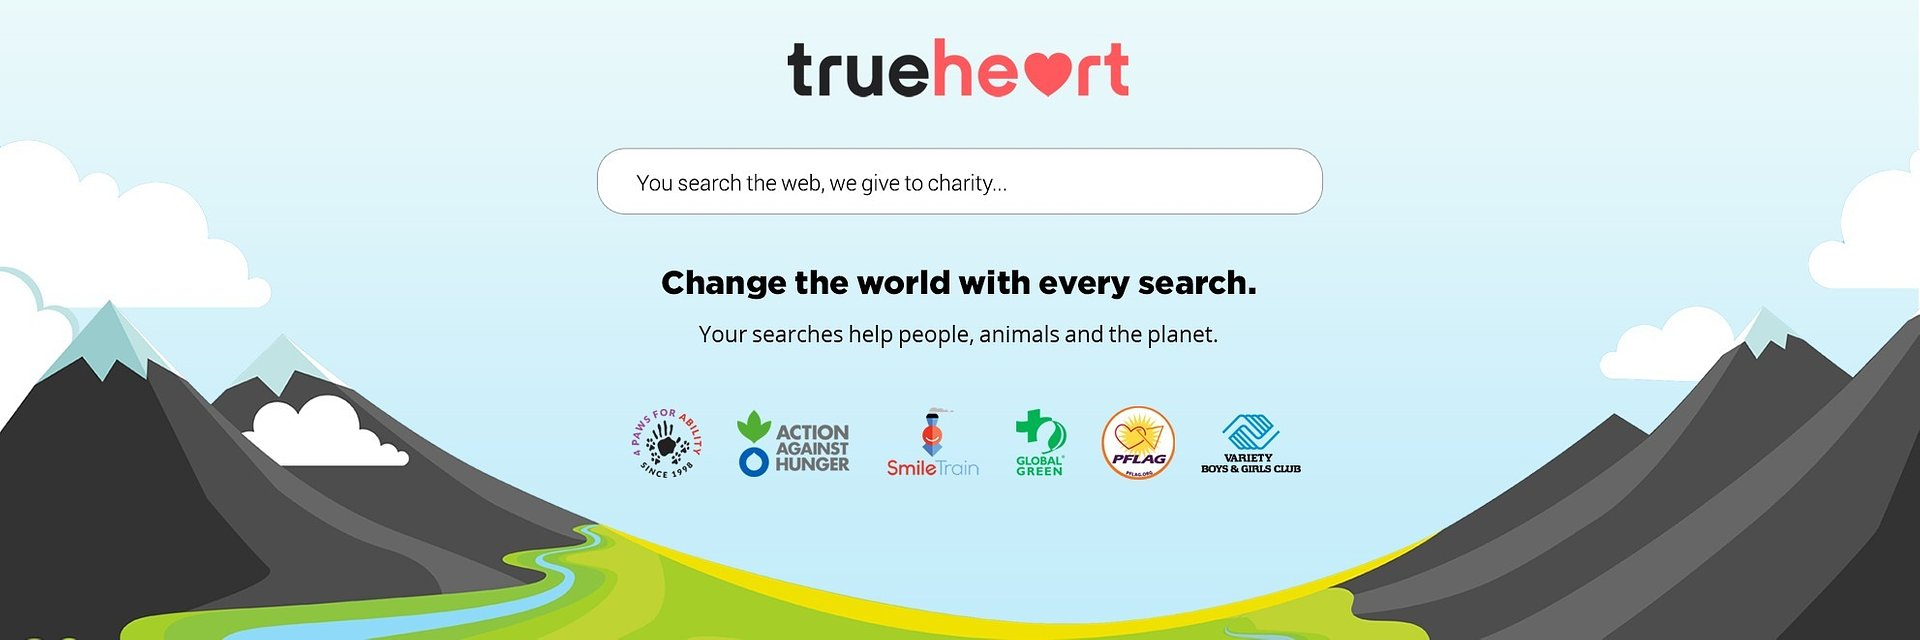 FIGHT FOR EQUALITY WITH EVERY SEARCH AT TRUEHEART